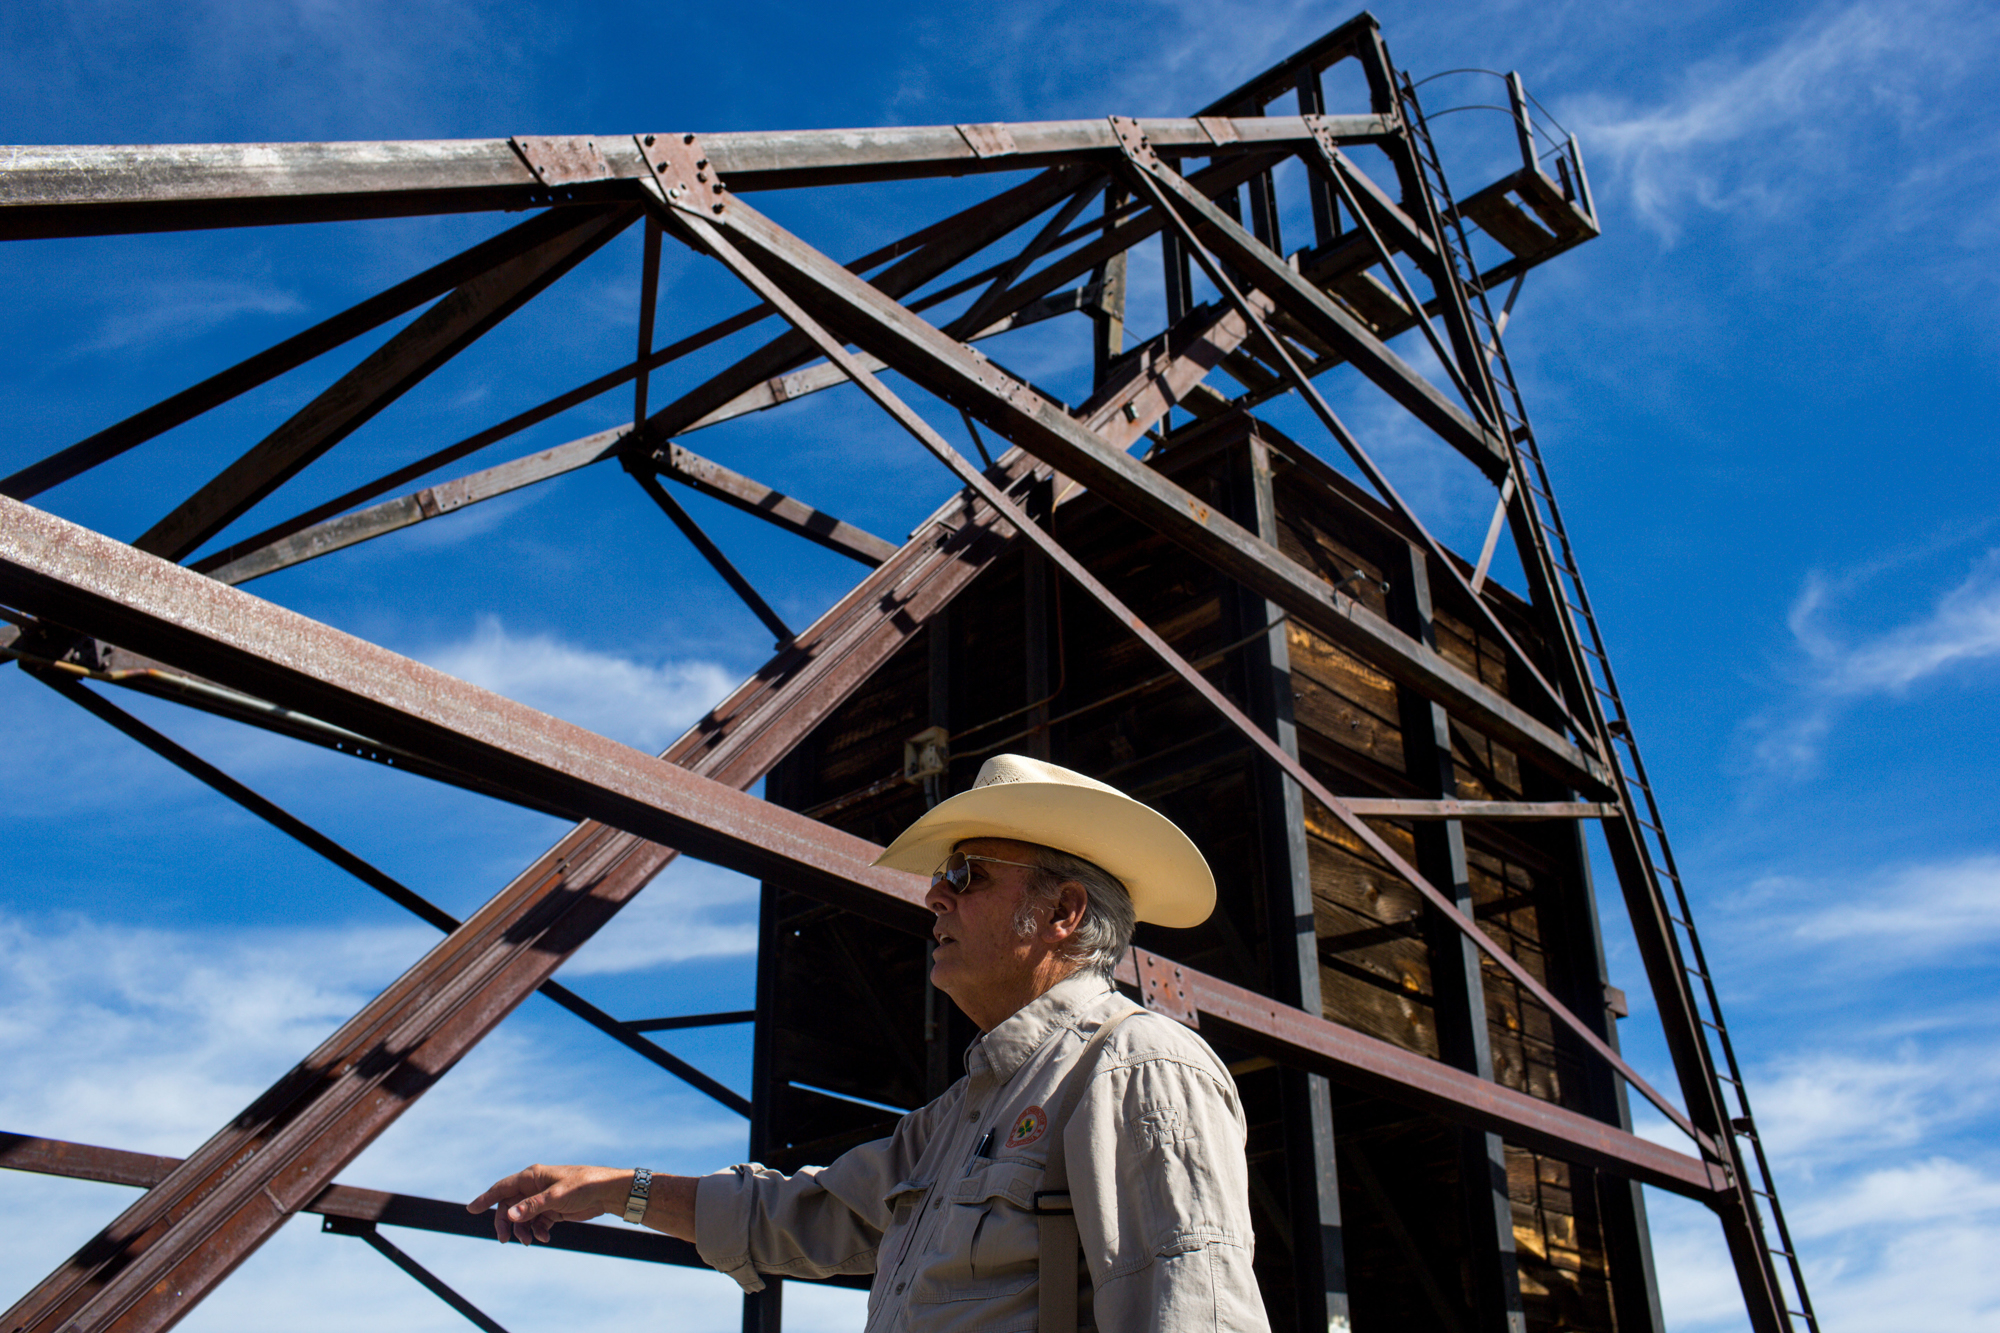 Jerry Tyra, an abandoned mine supervisor, wears a straw cowboy hat as he stands in front of an abandoned mine.